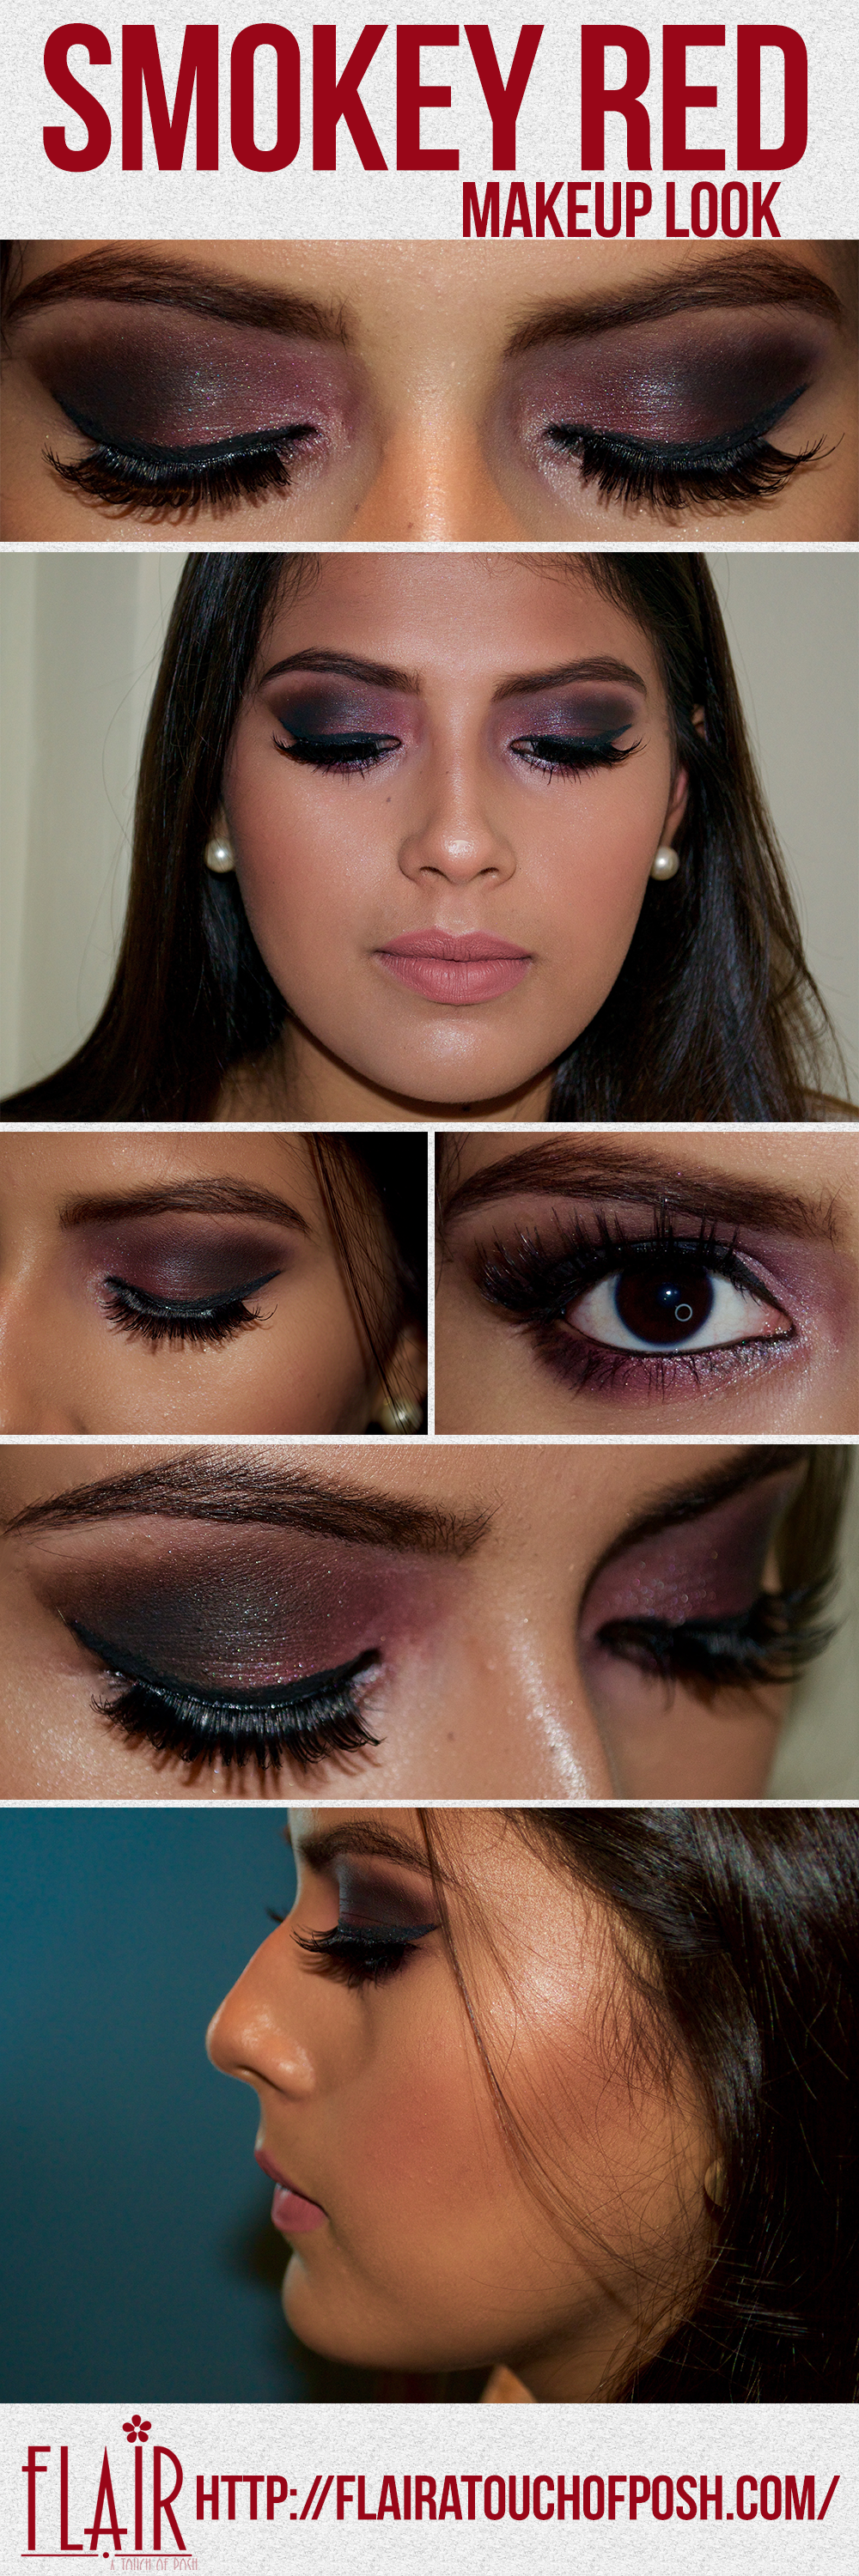 Smokey Red Makeup Look